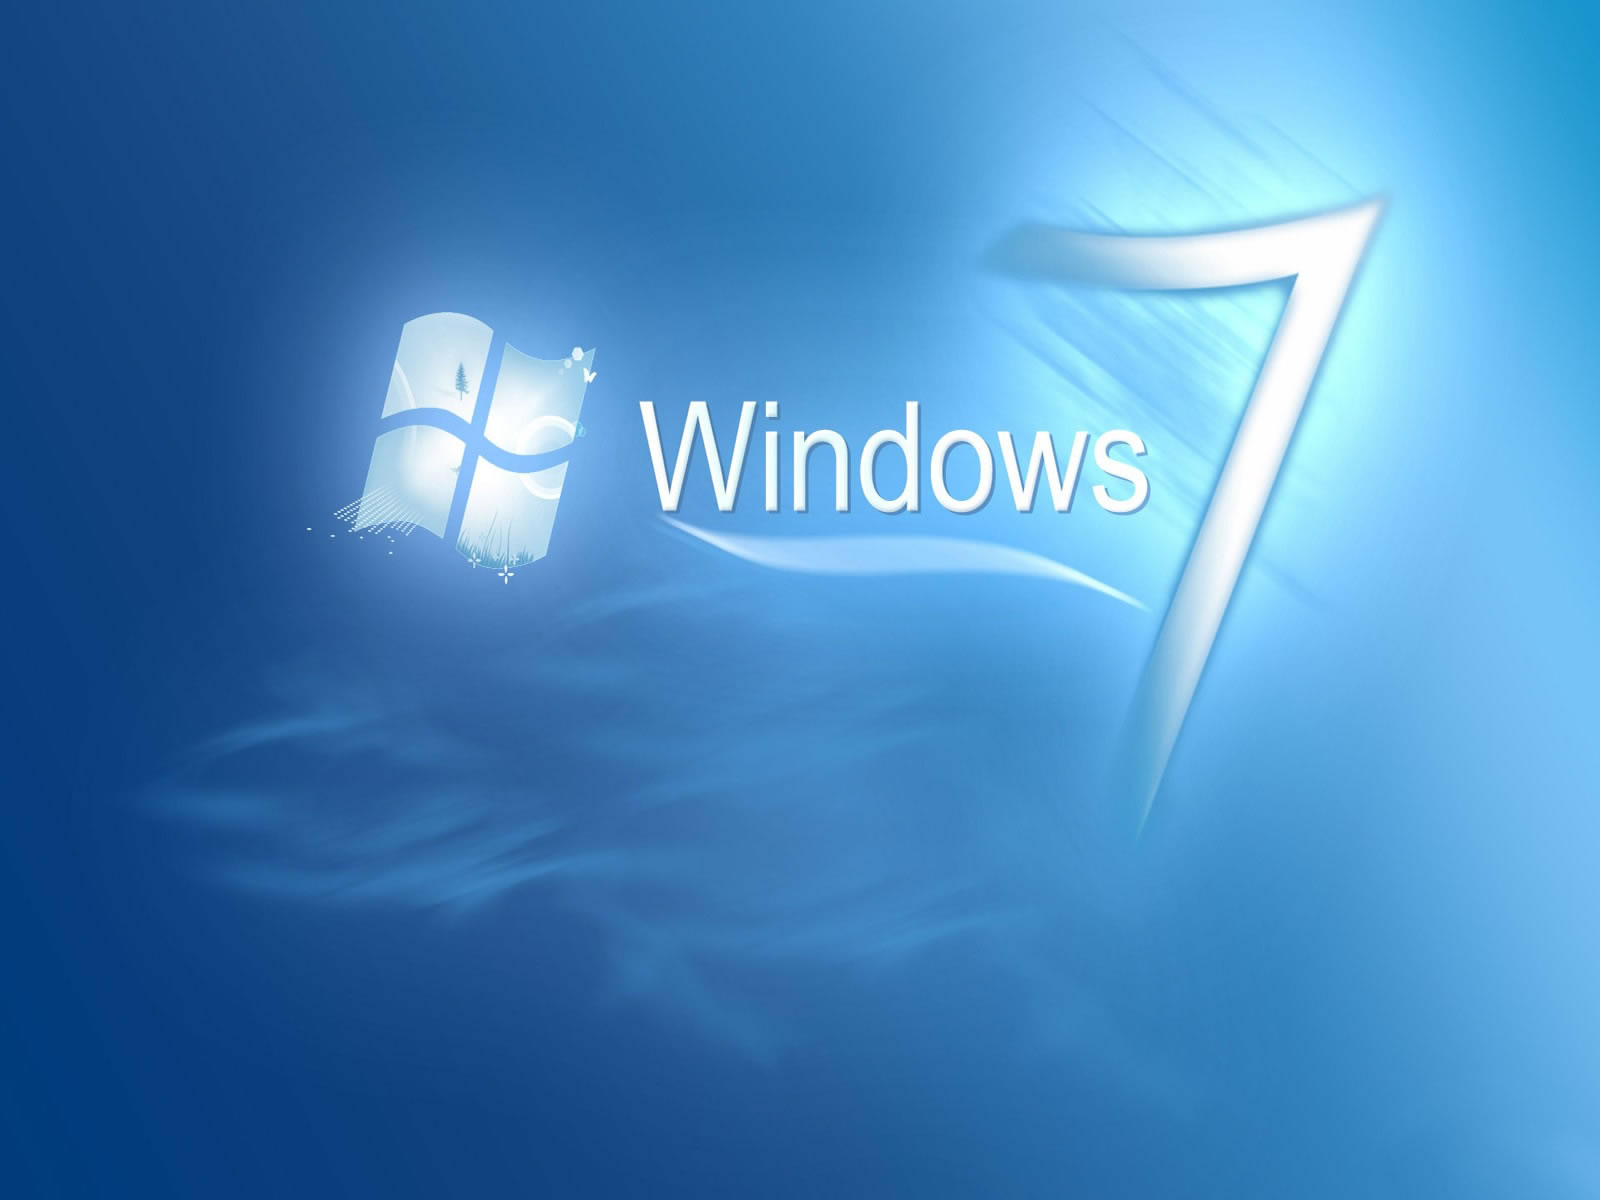 Активатор Для Windows 7 Базовой